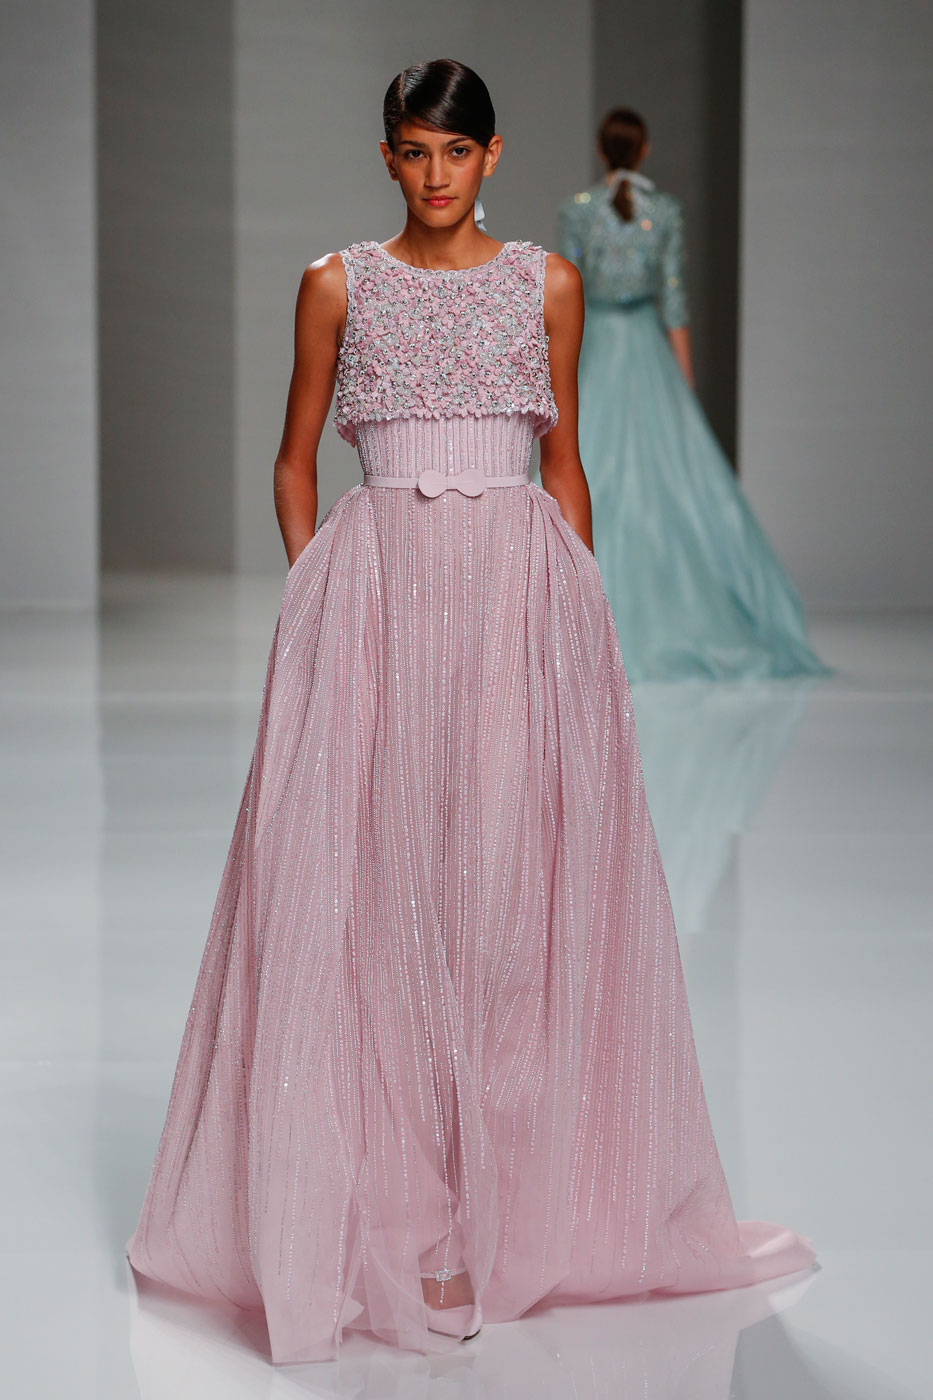 Georges-Hobeika-fashion-runway-show-haute-couture-paris-spring-2015-the-impression-21